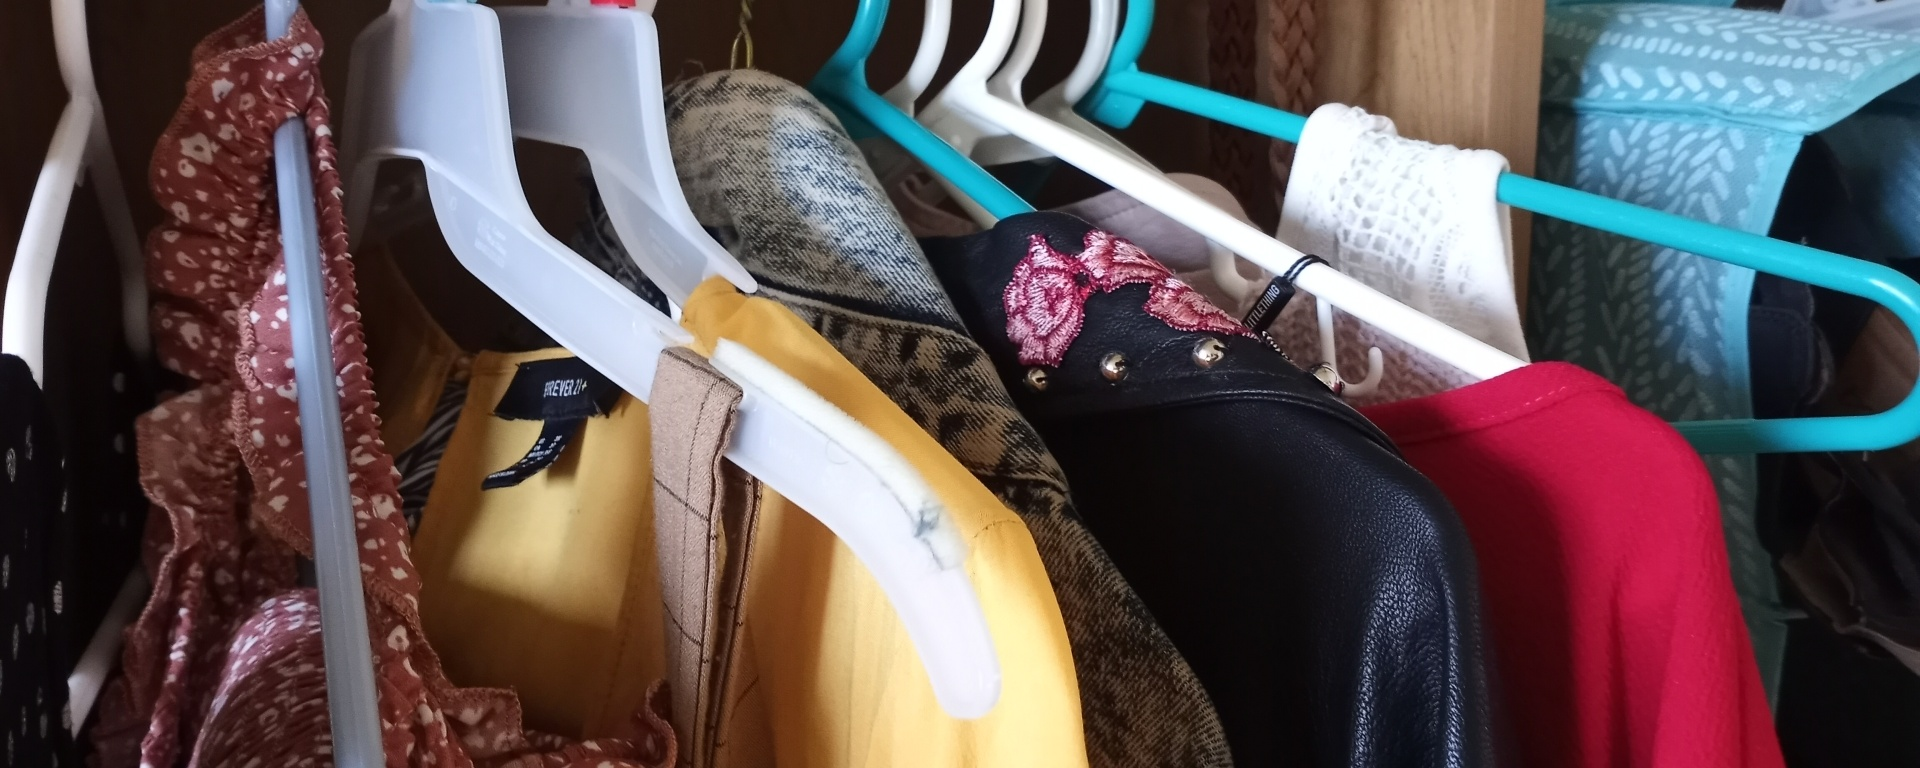 Variety of clothes hanging on clothing hangers